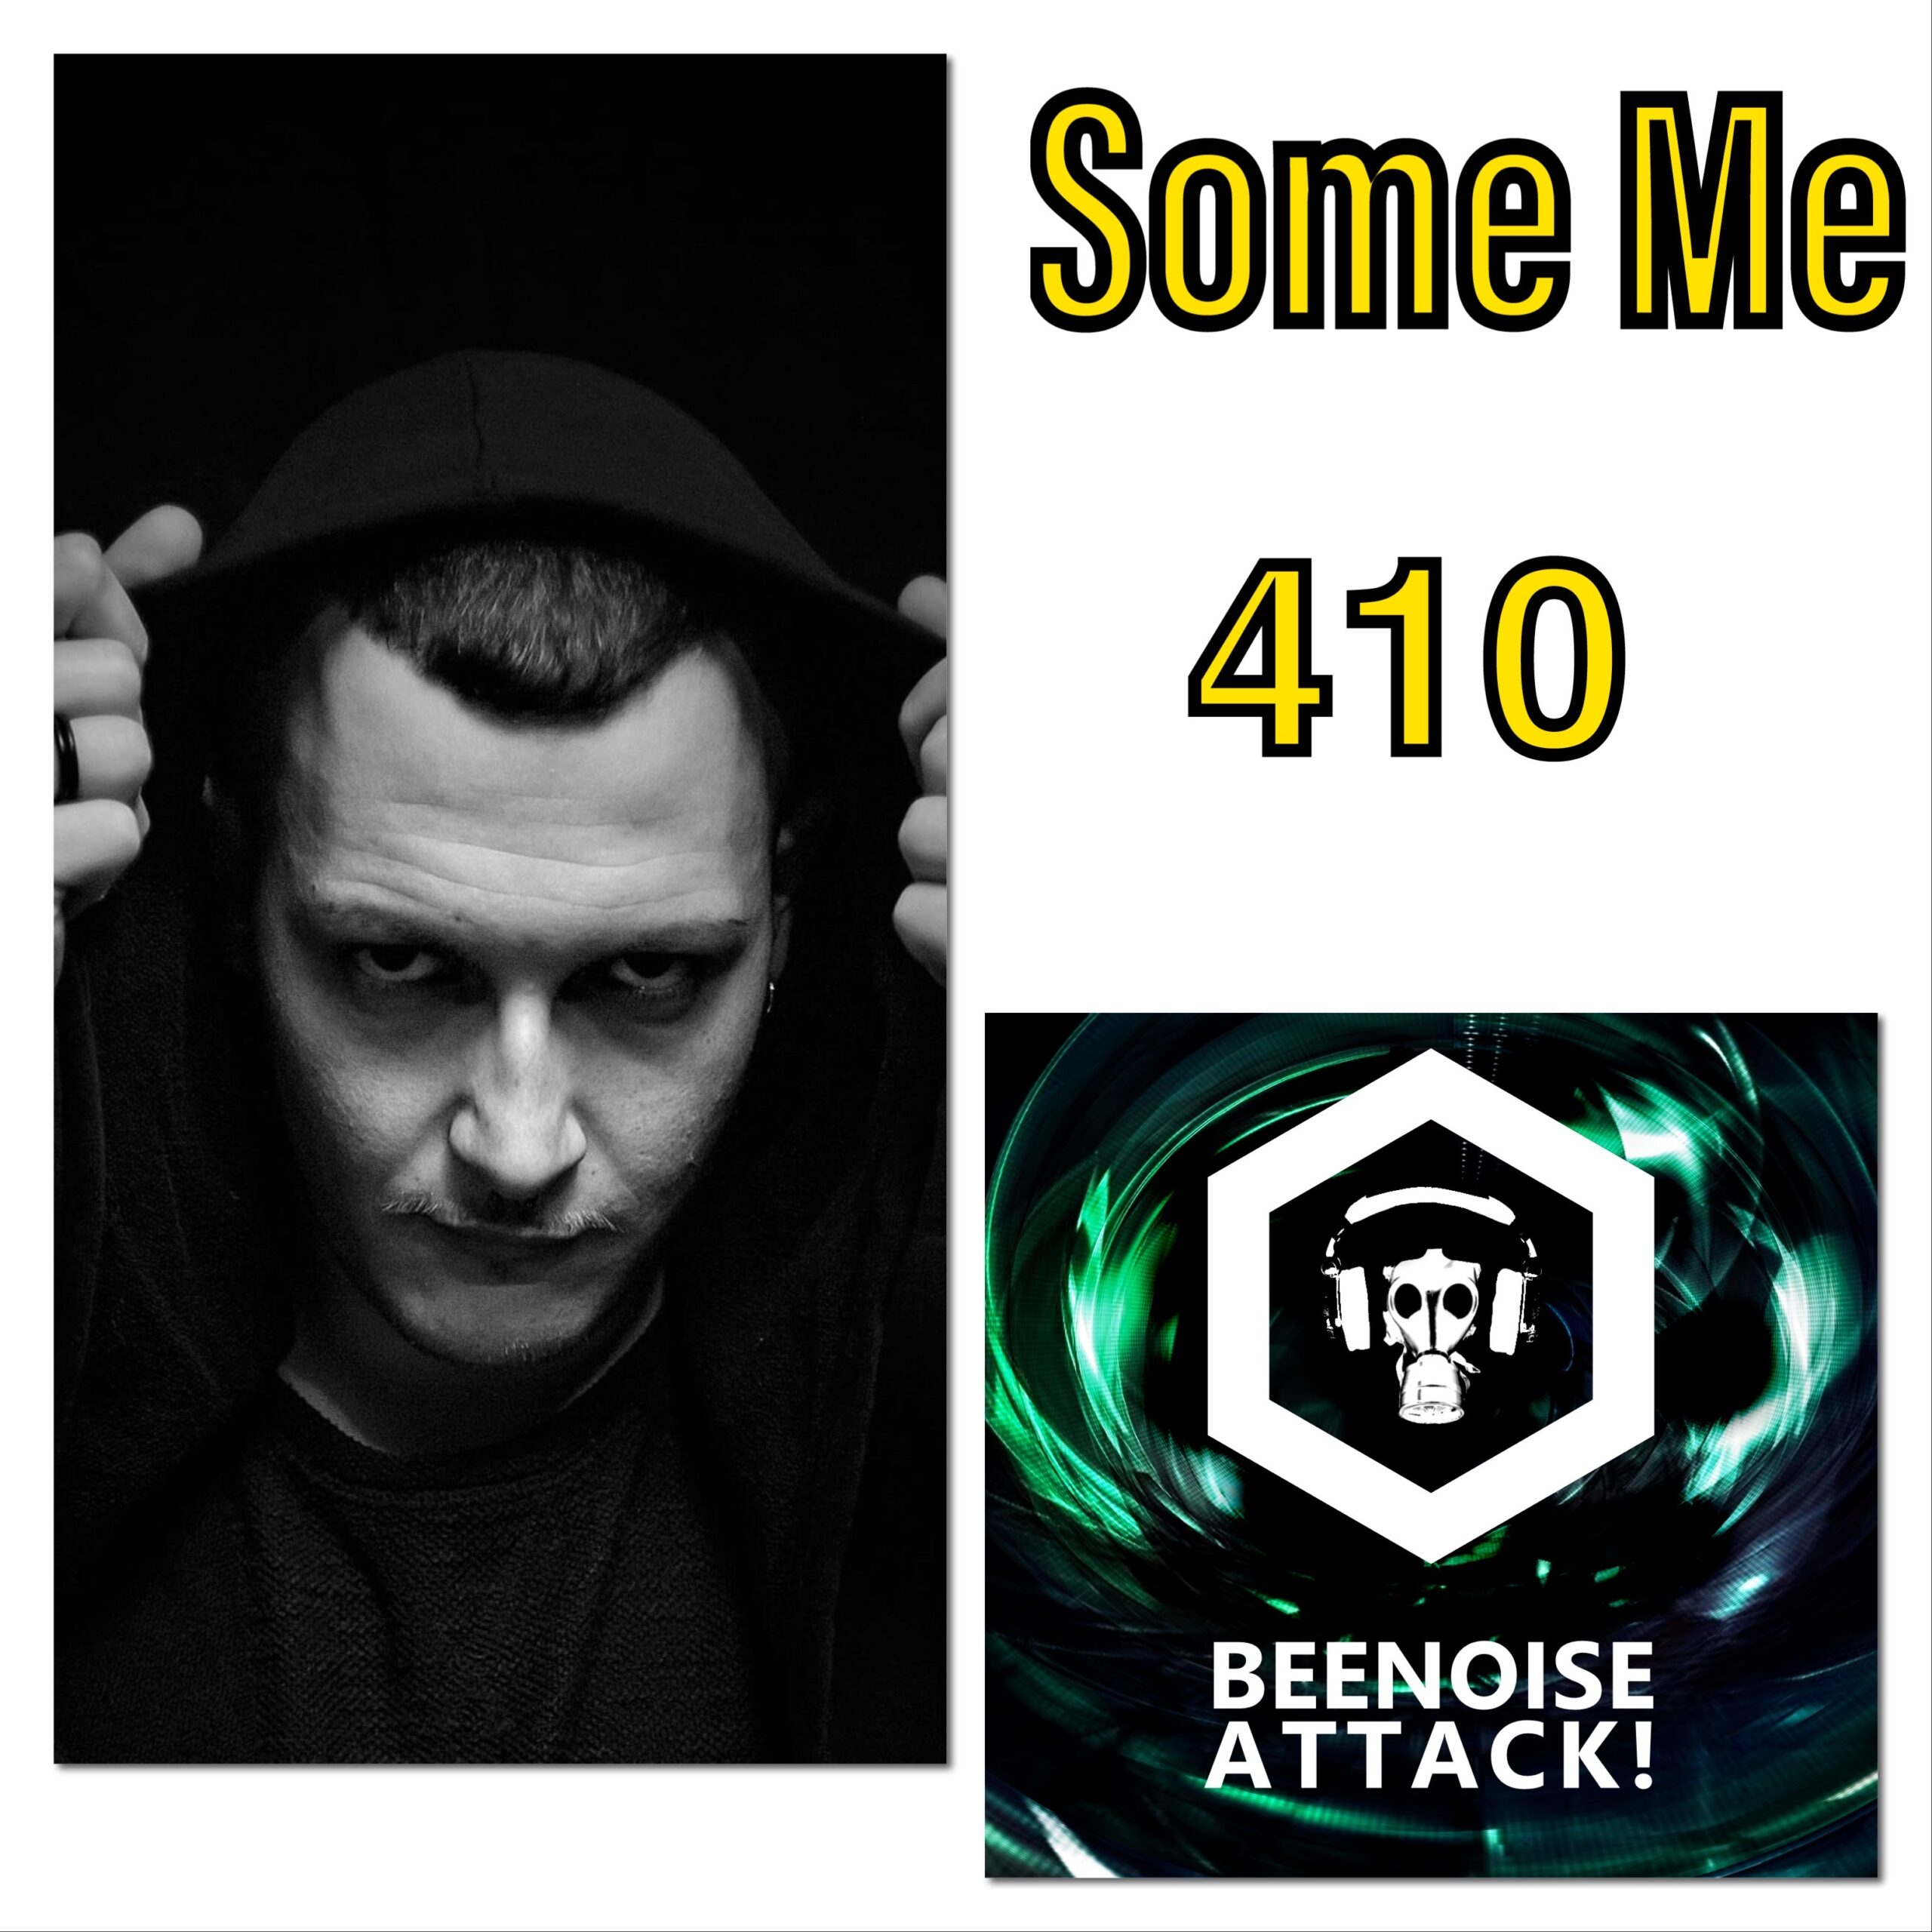 beenoise attack episode 410